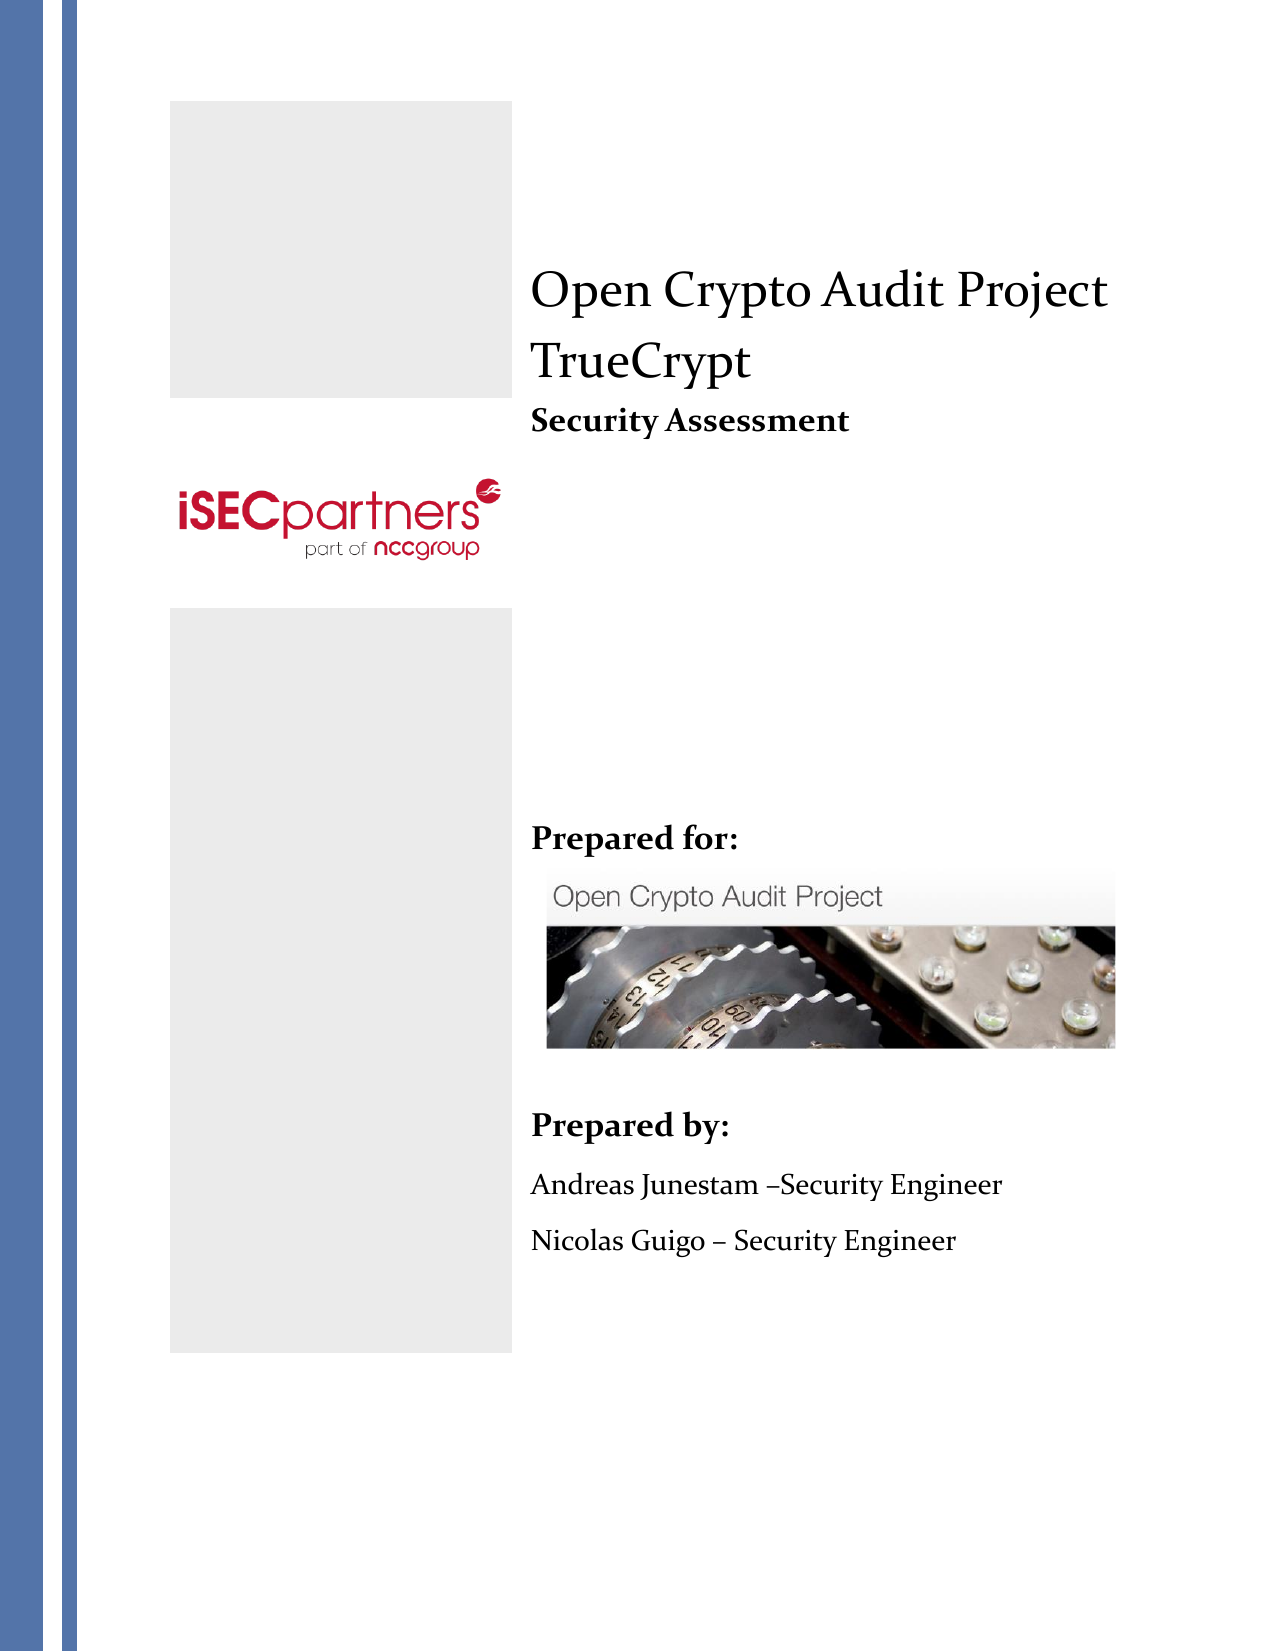 First page of the 'iSec Final Open Crypto Audit Project TrueCrypt Security Assessment' PDF